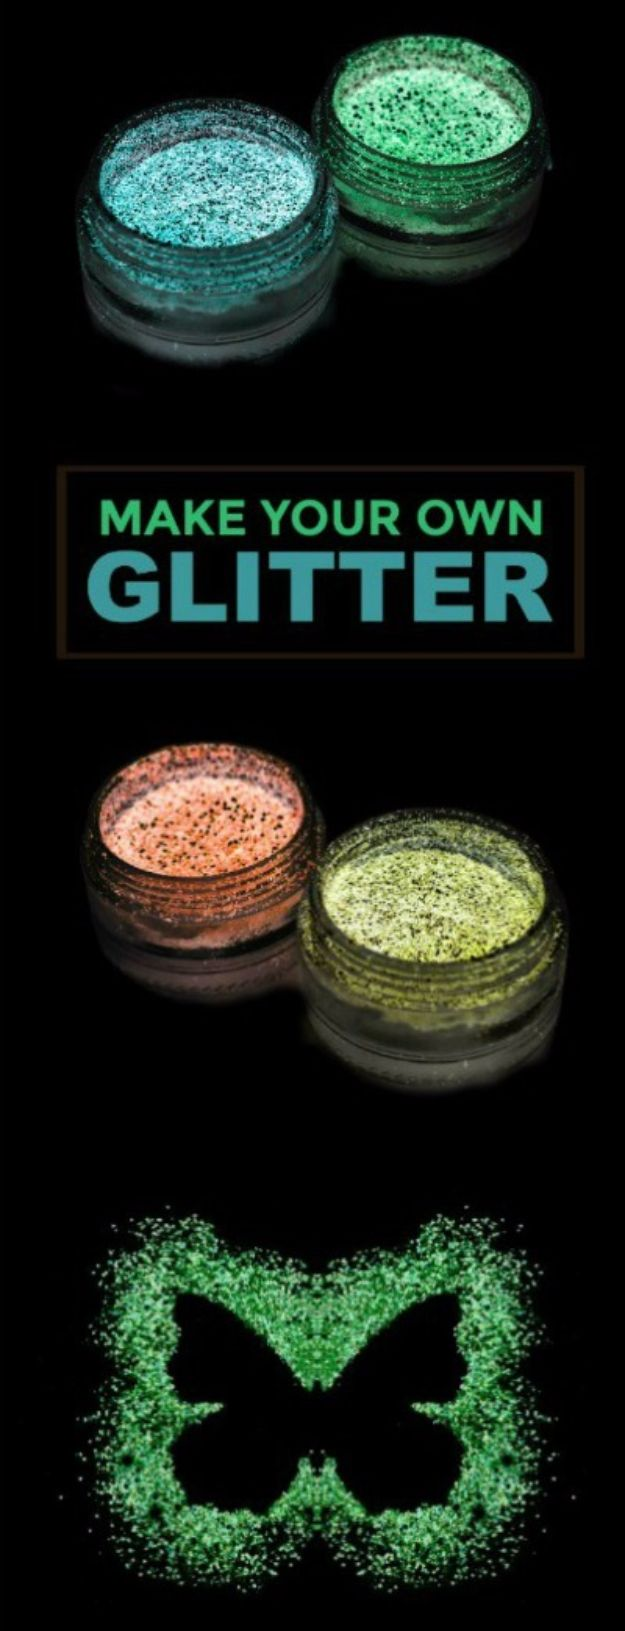 DIY Ideas WIth Glitter - Glow-in-the-Dark Glitter - Easy Crafts and Projects for Decoration, Gifts, and Bedroom Decor - How To Make Ombre, Mod Podge and Glitter Mason Jar Gift Ideas For Teens - Easy Clothes and Makeup Crafts For Teenagers #diyideas #glitter #crafts